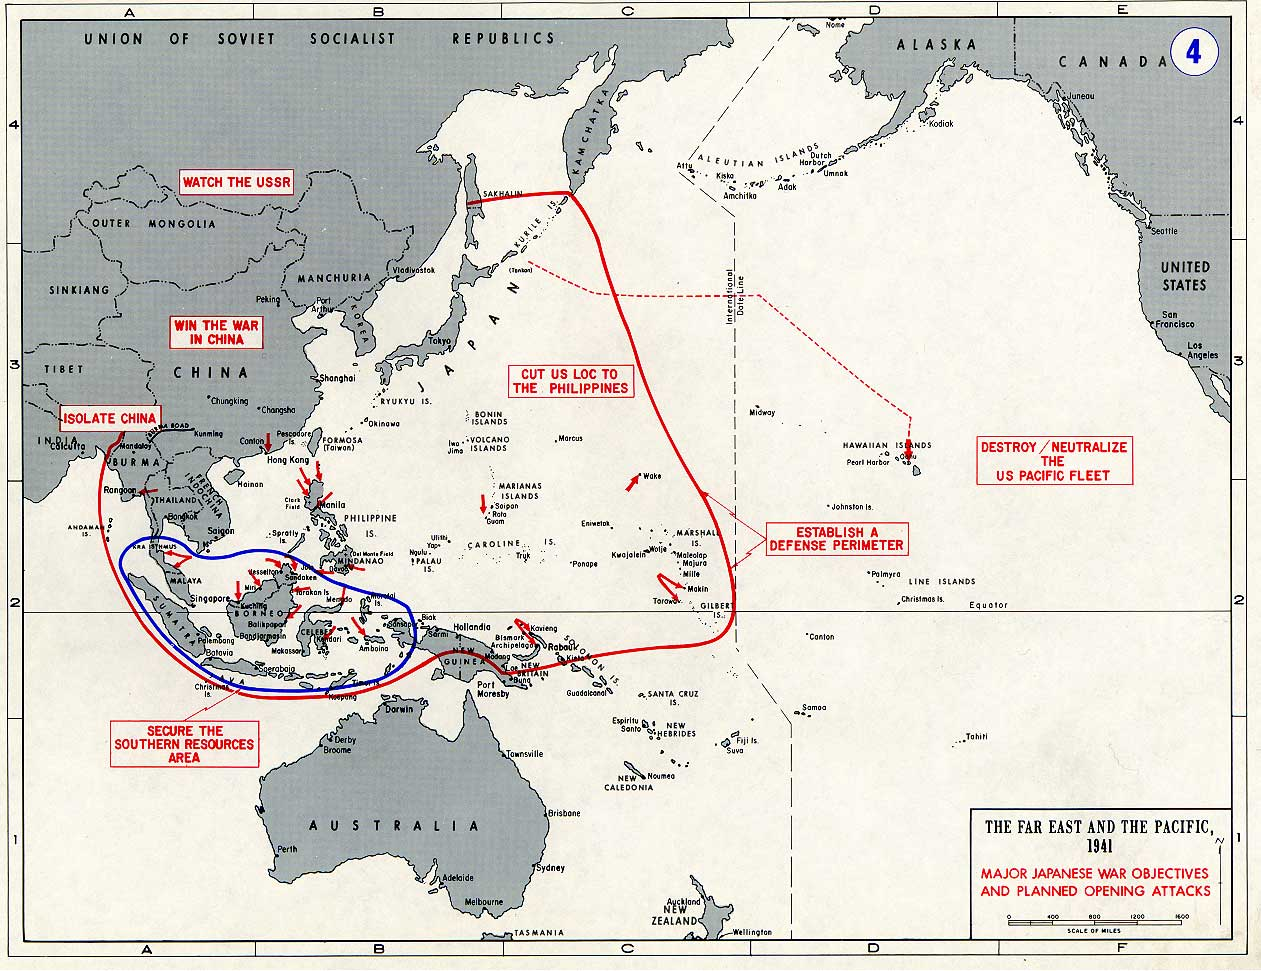 Battle map showing the area of the Far East and Pacific 1941 0A